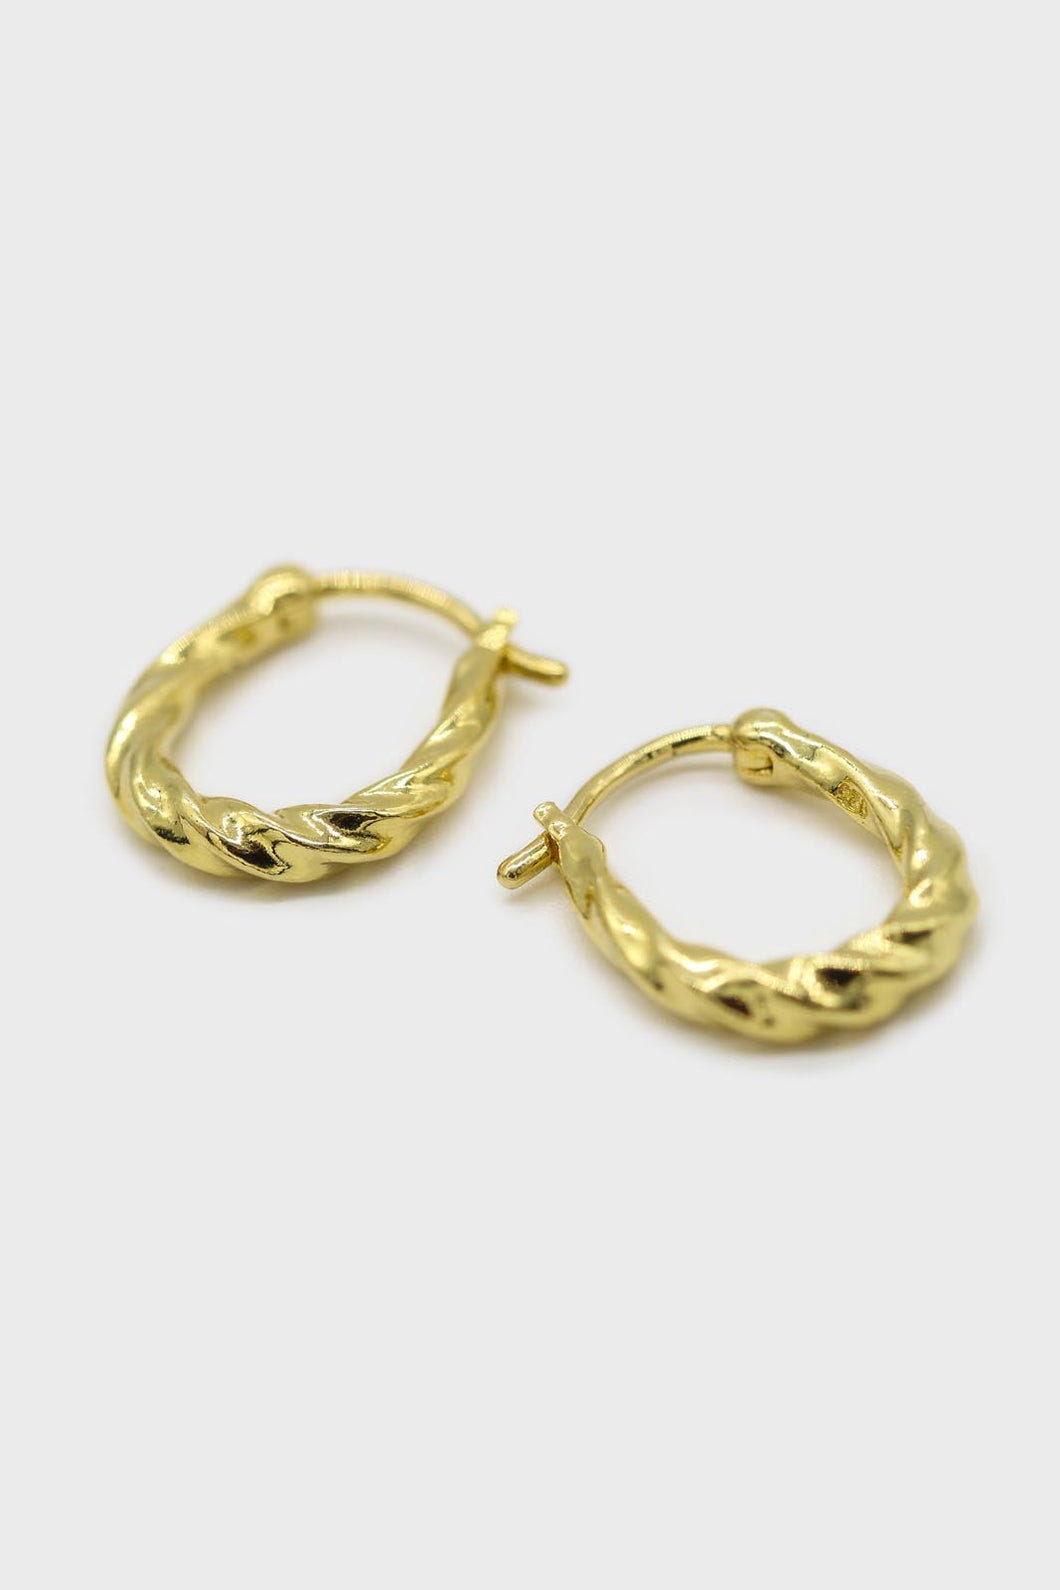 Gold twisted oval huggie earring - 9mm1sx